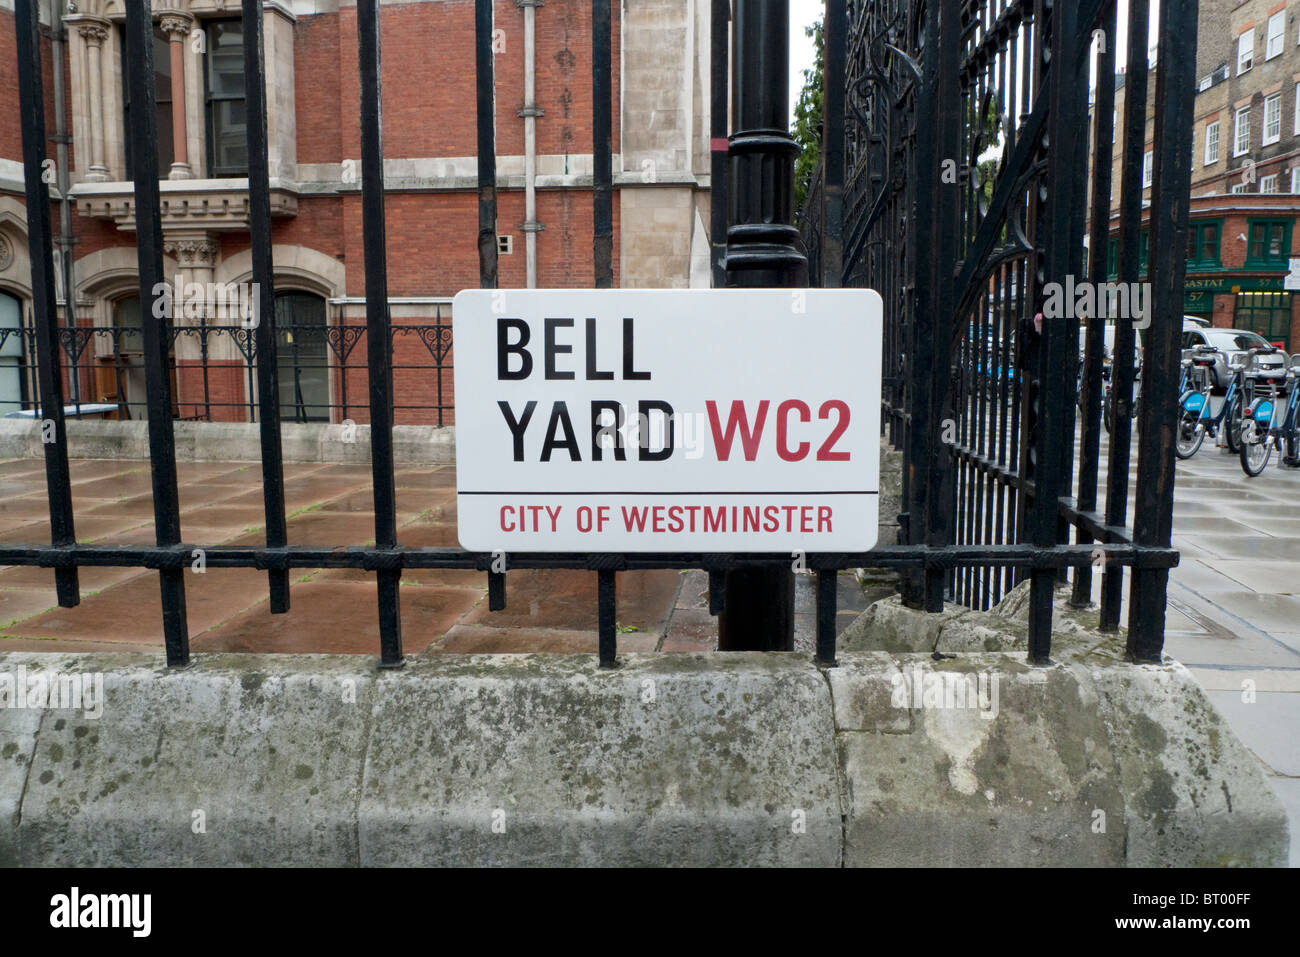 Bell Yard WC2 City of Westminster street sign at  the back of the Royal Courts of Justice near Star Yard London - Stock Image